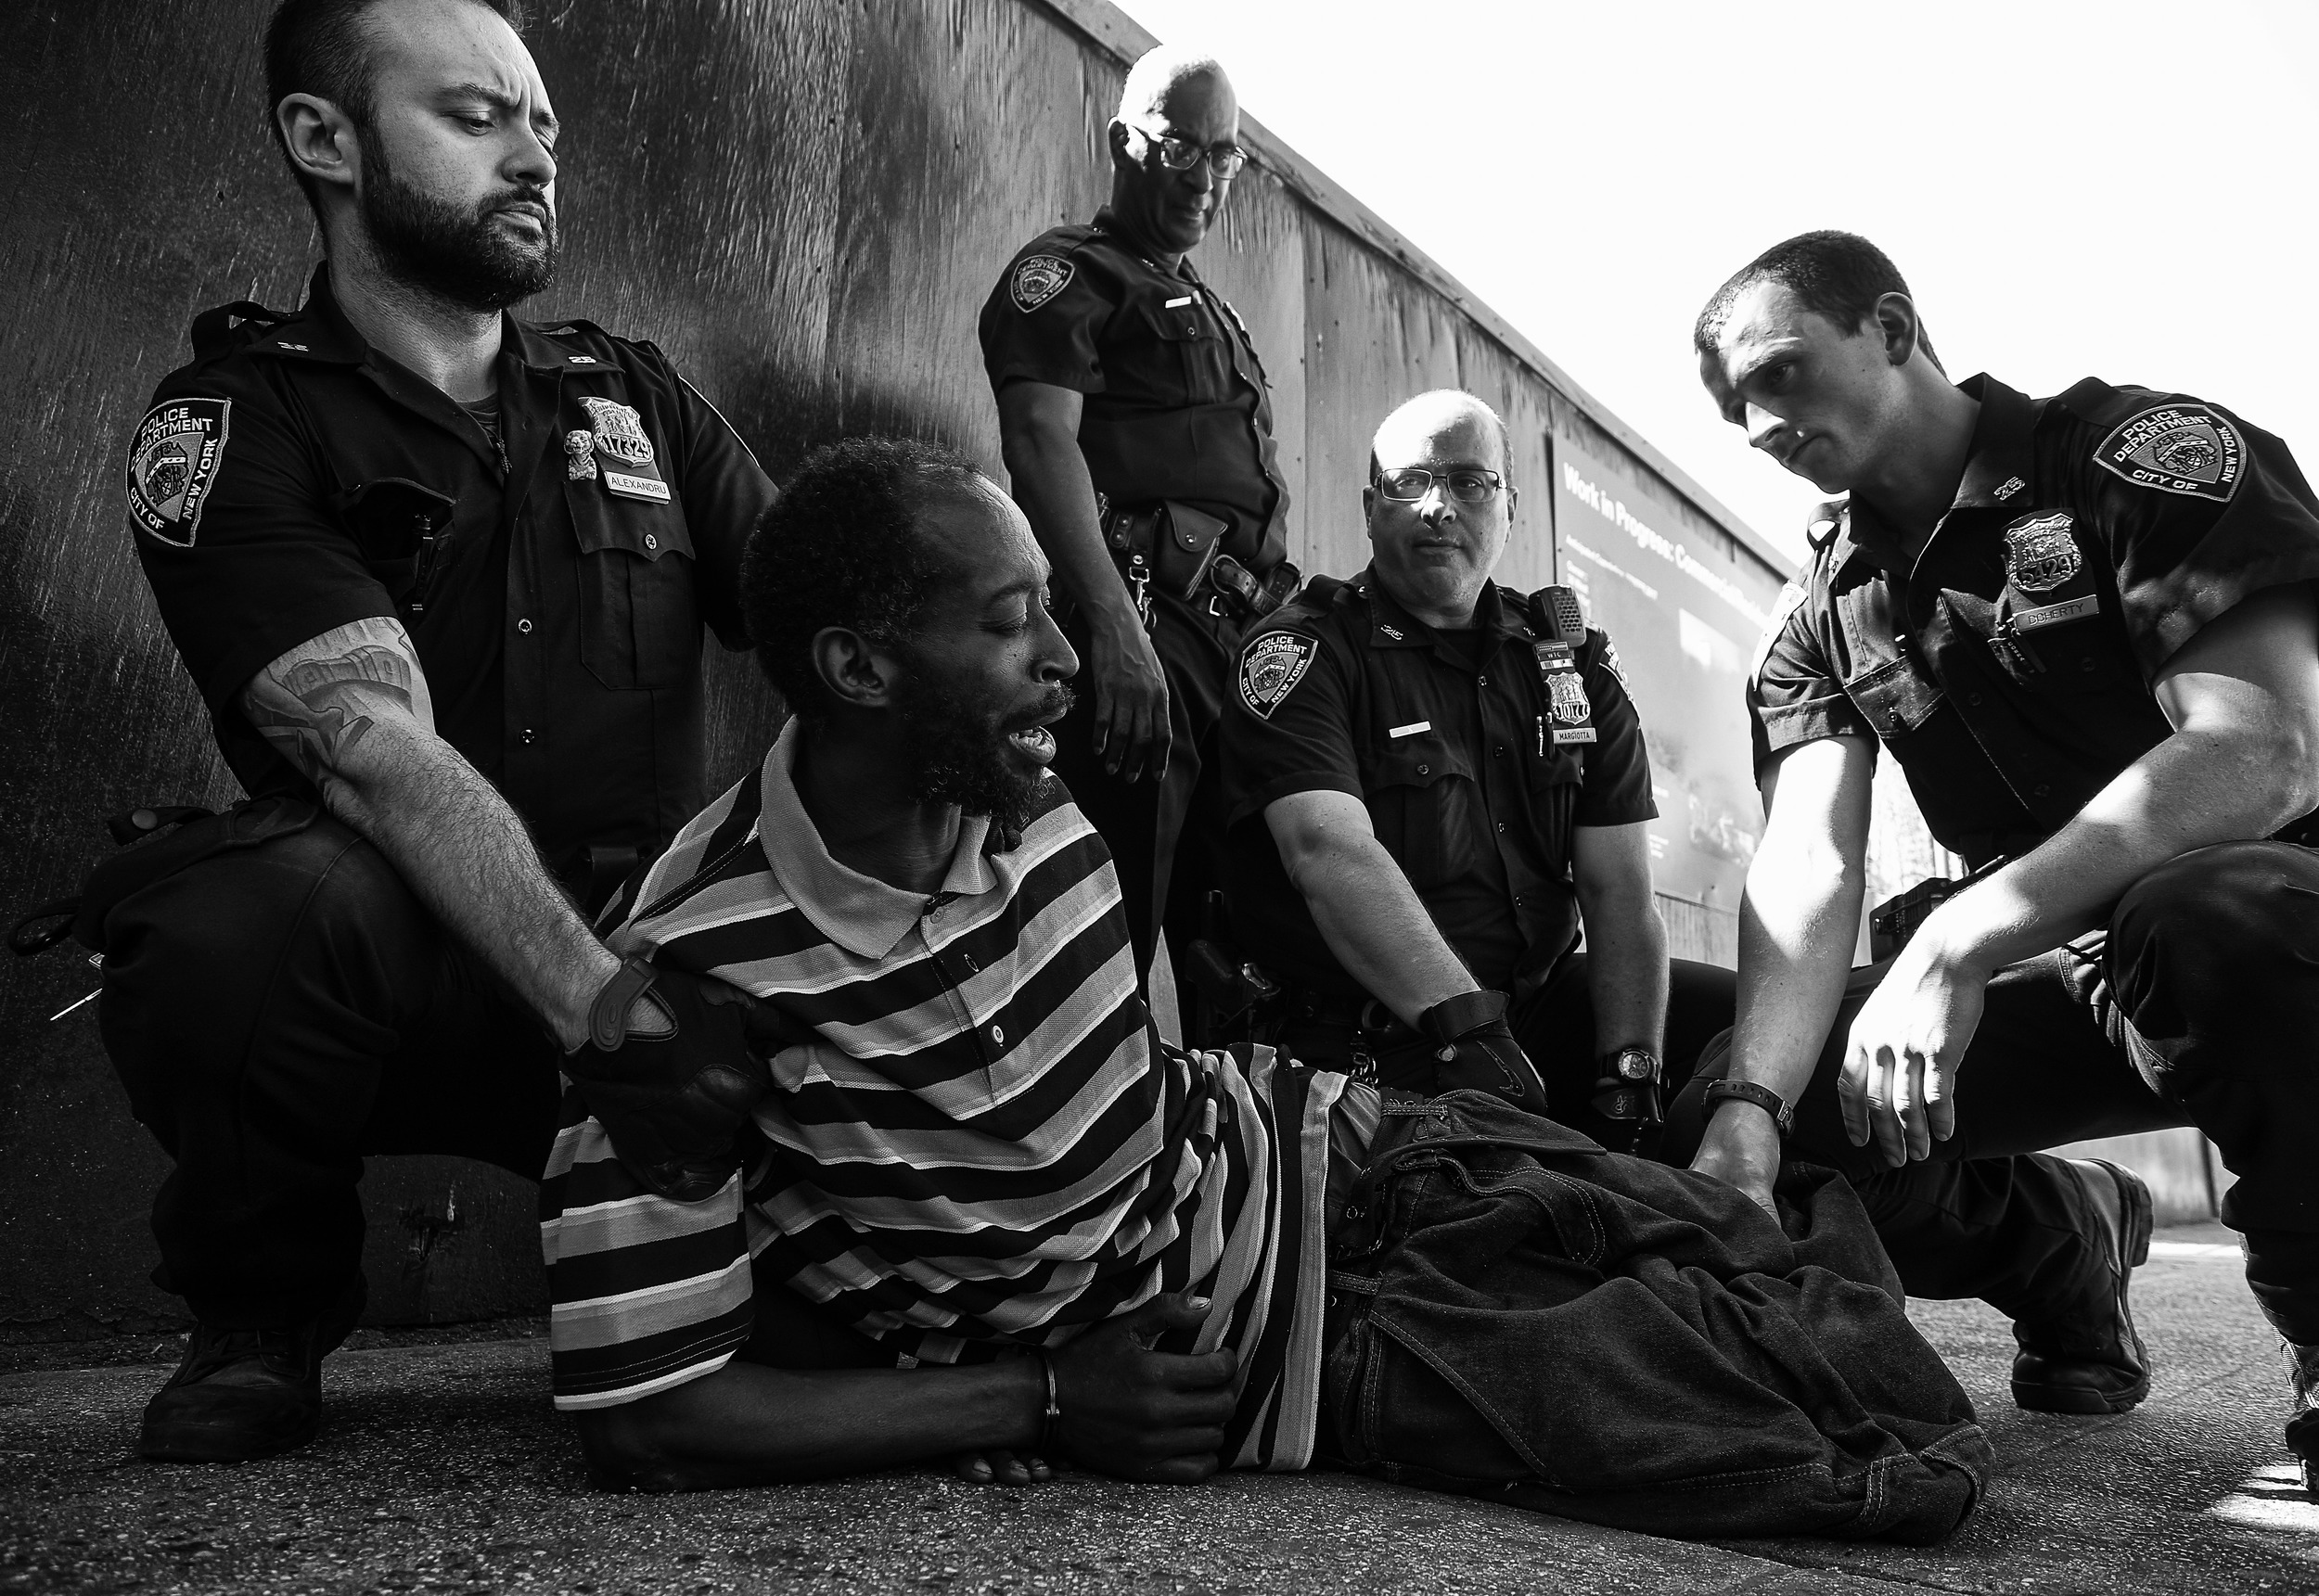 A homeless man is arrested in an area of East Harlem that has experienced a surge in the use of synthetic marijuana, on Friday, September 18, 2015 in New York, N.Y.